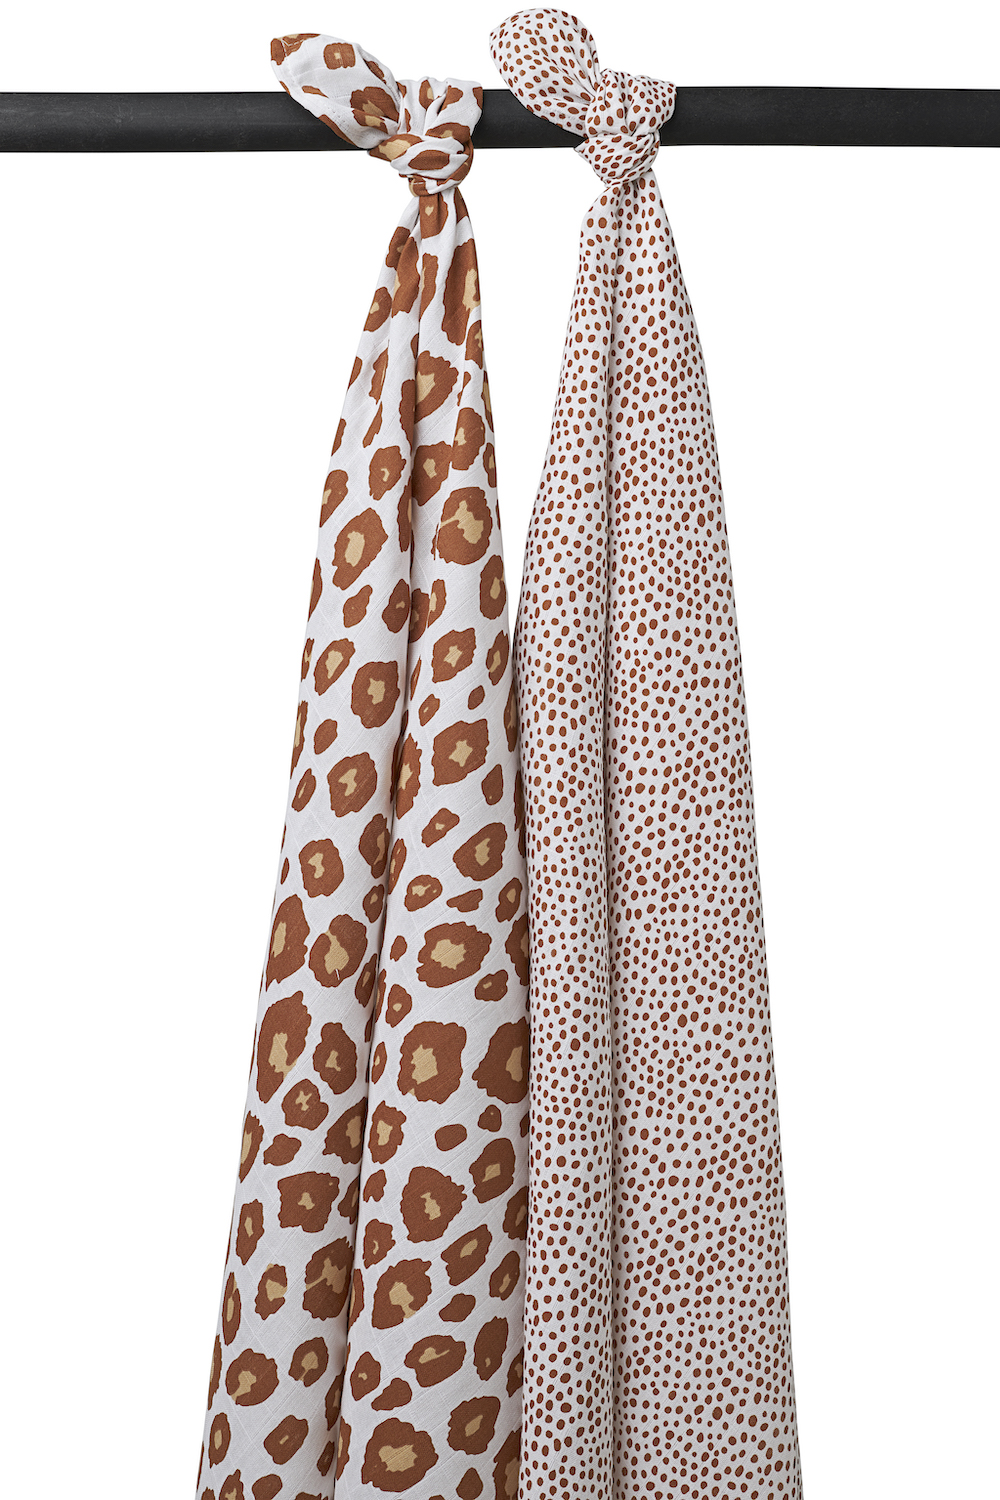 Musseline Swaddles 2-pack Panter/Cheetah - Camel - 120x120 cm